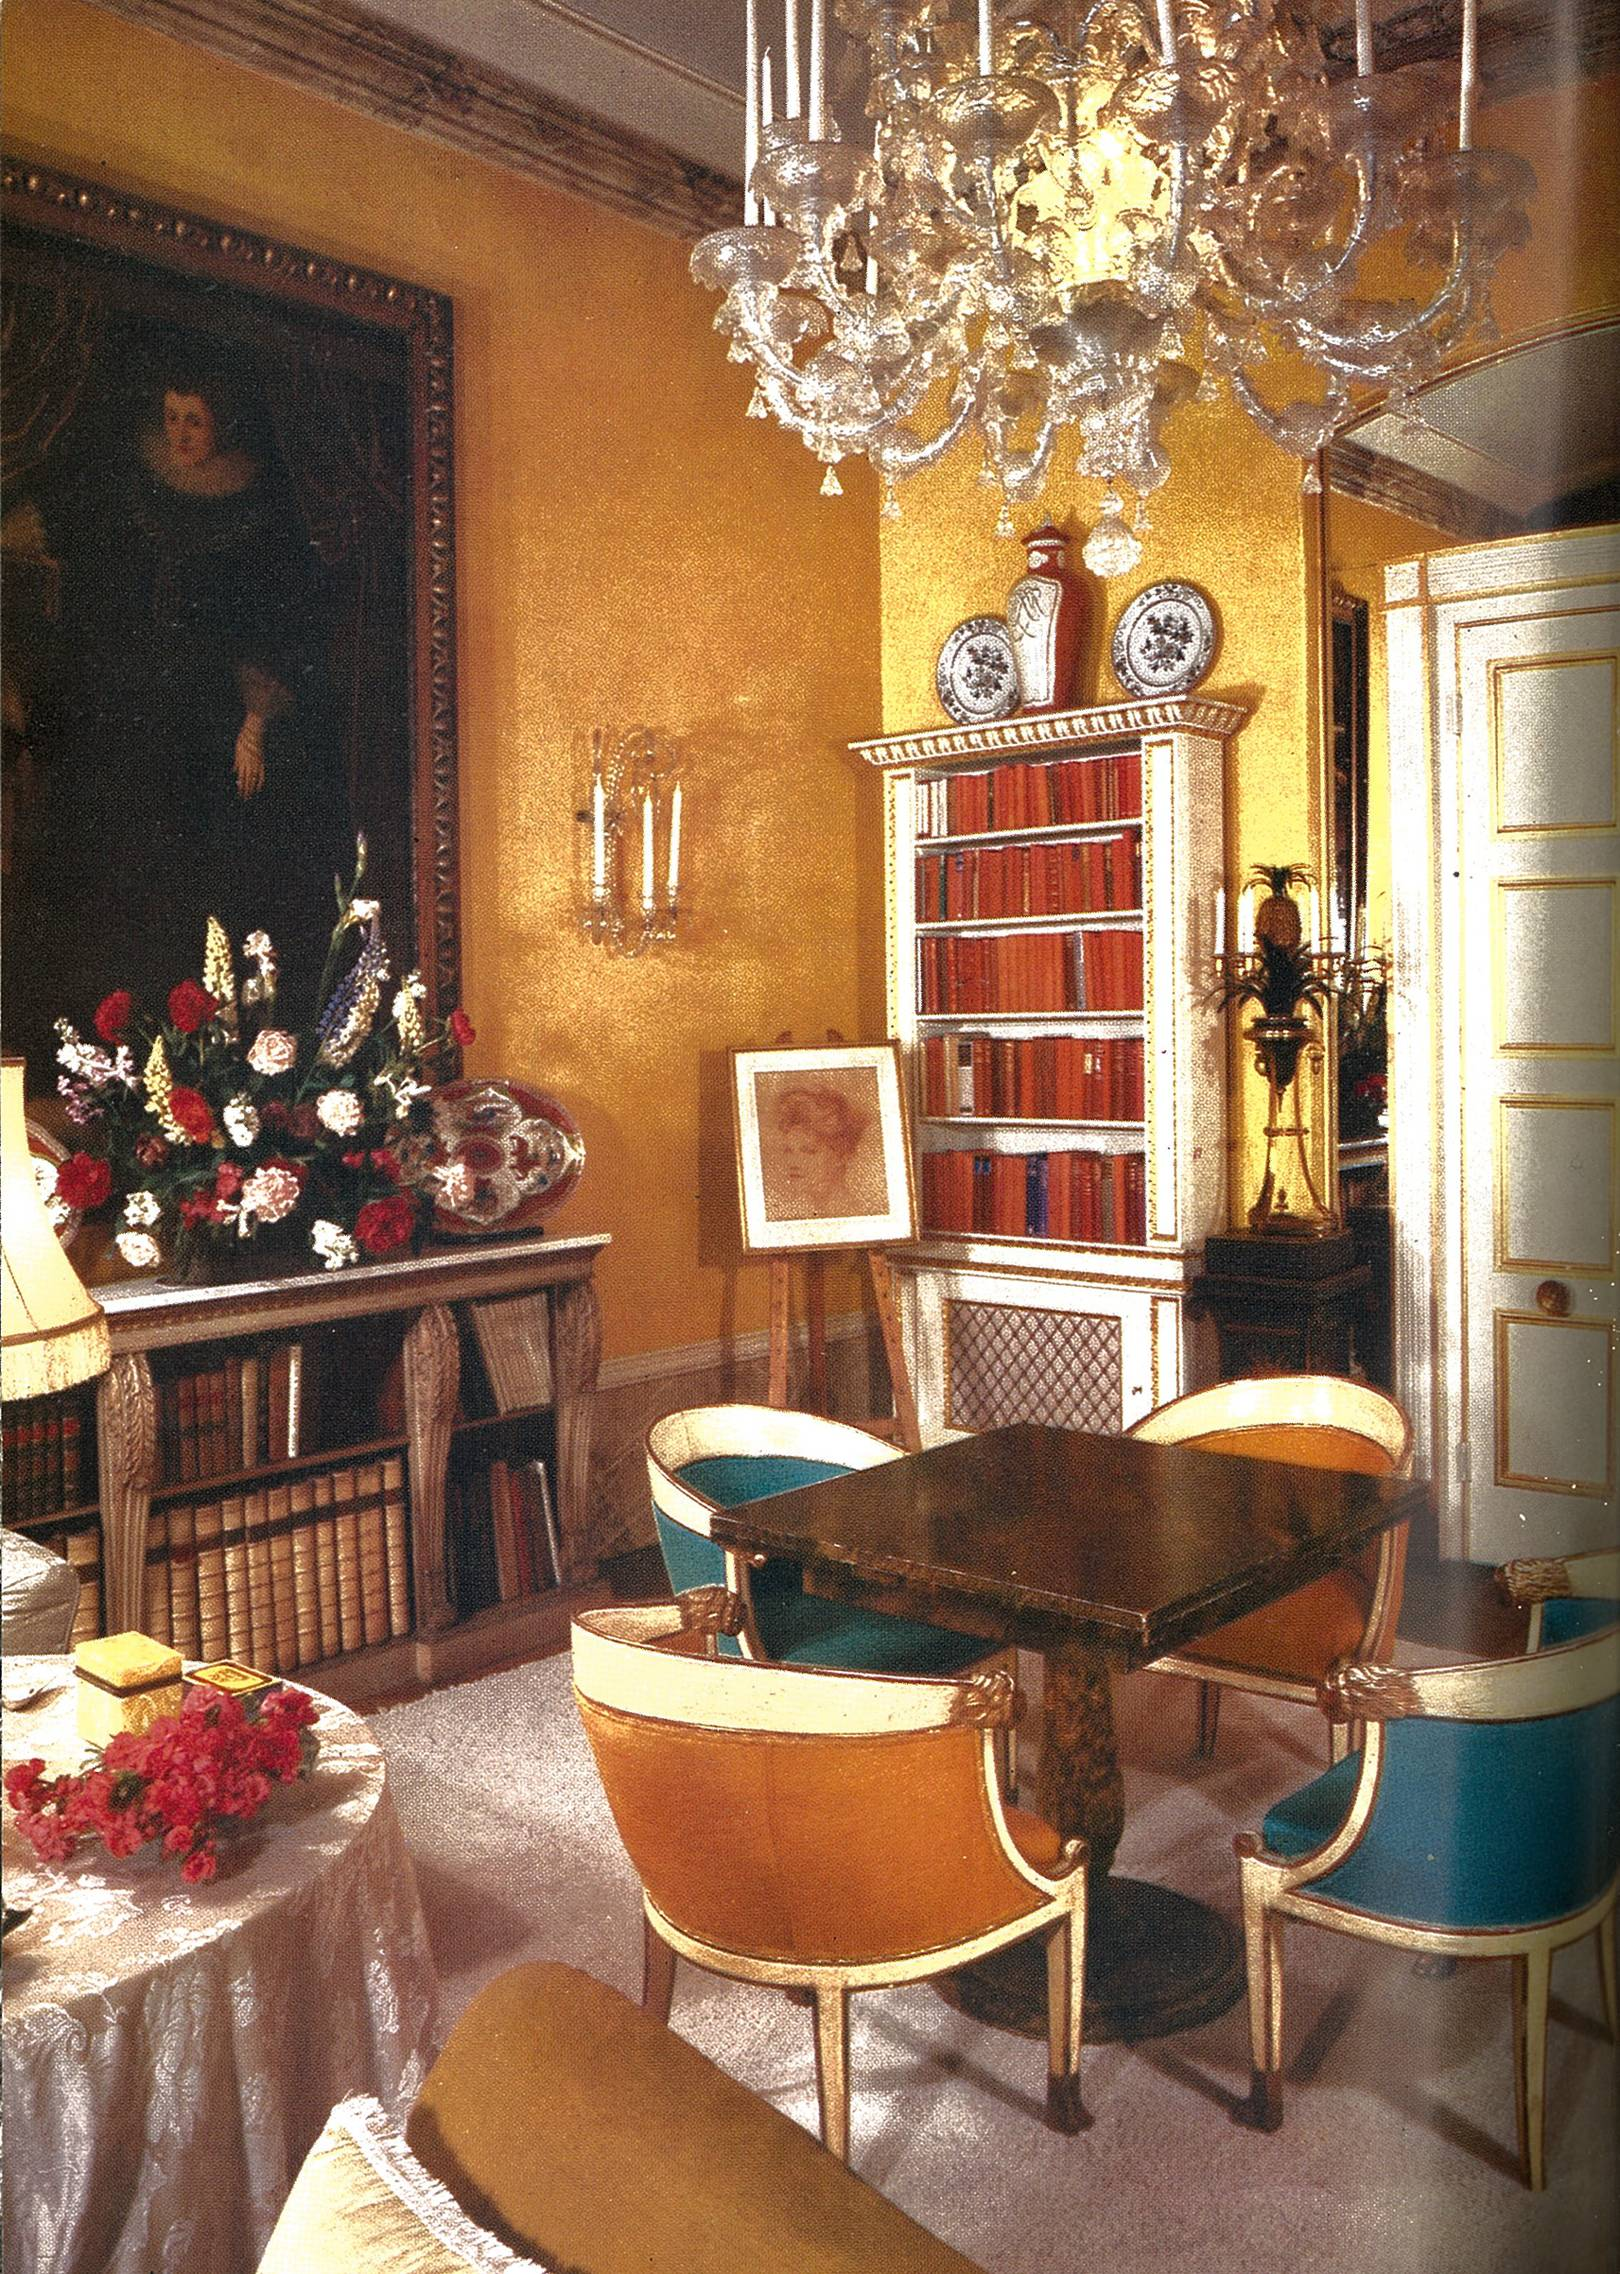 From the archive: Nancy Lancaster's apartment in Mayfair (1960)